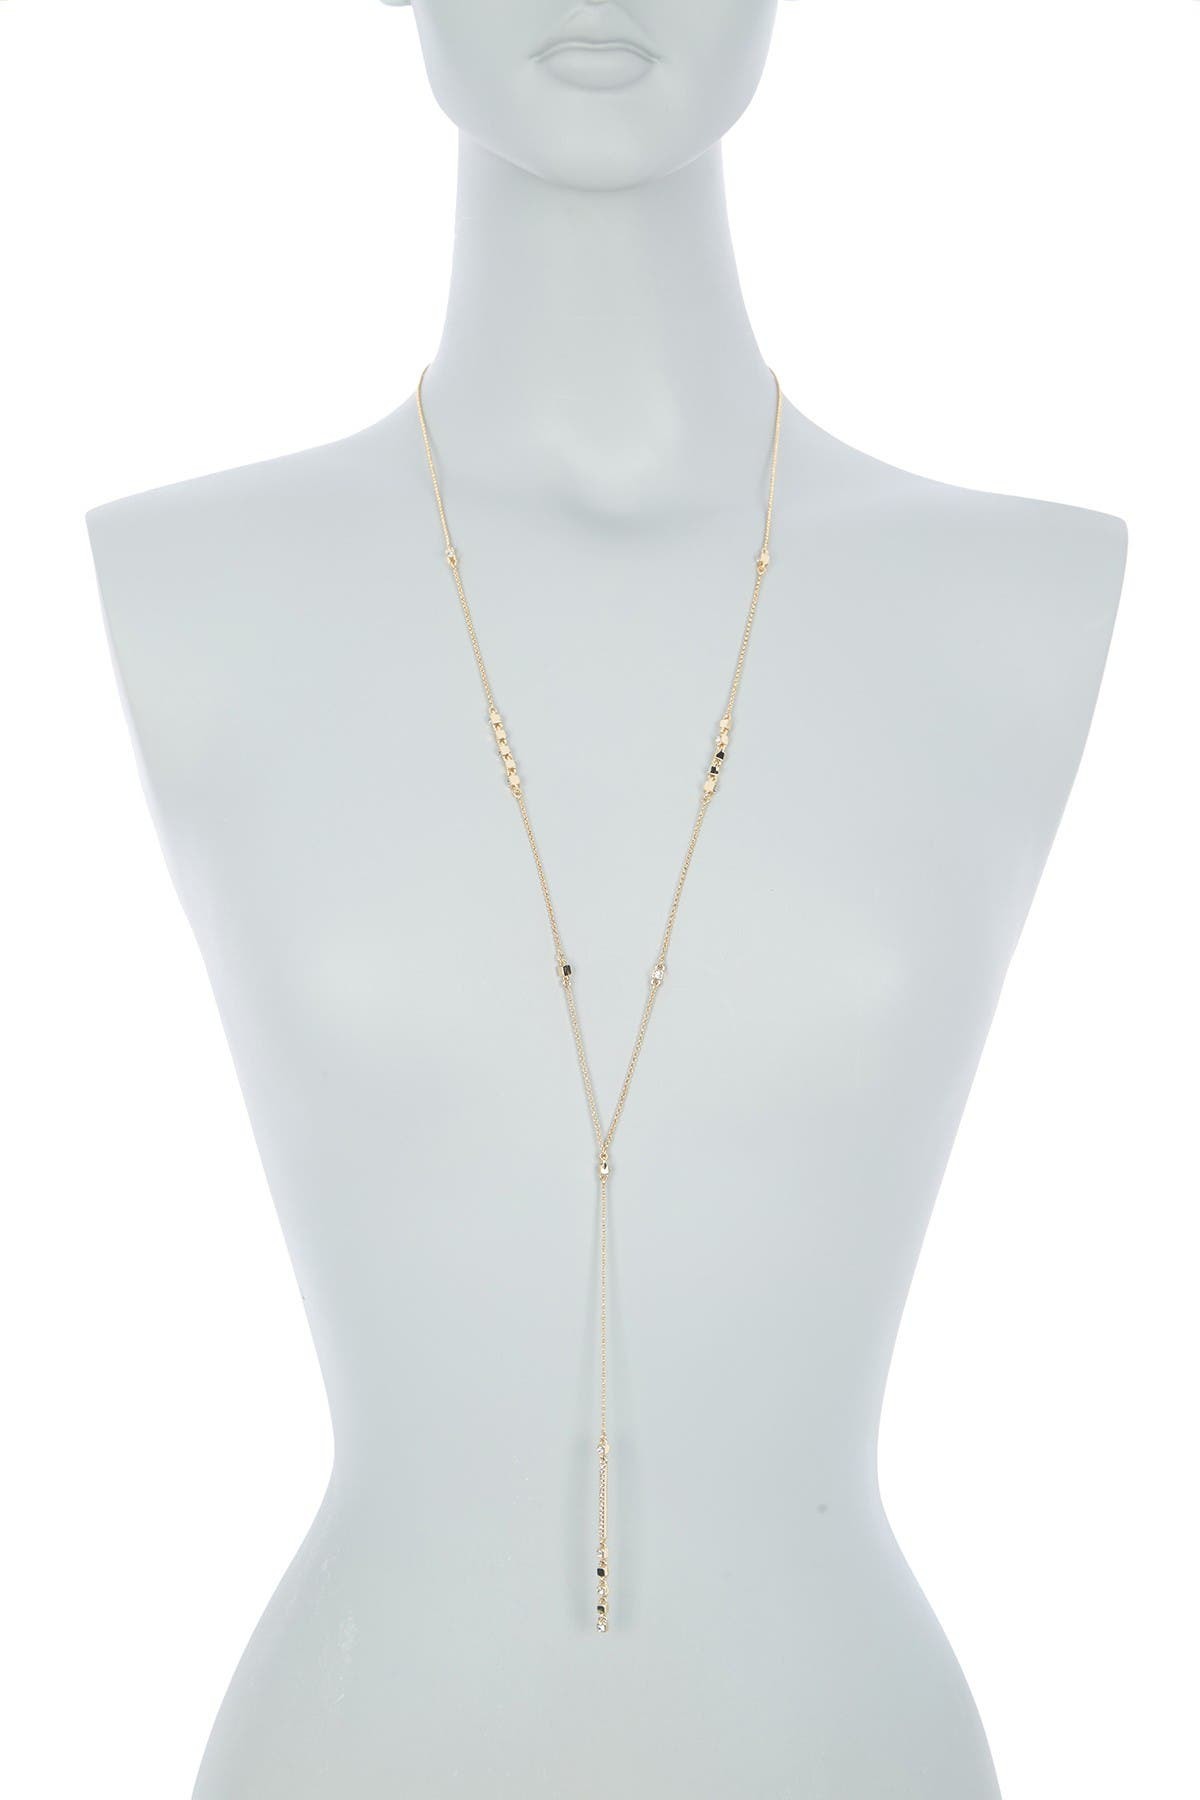 Image of DKNY Crystal Square Station Long Y-Necklace